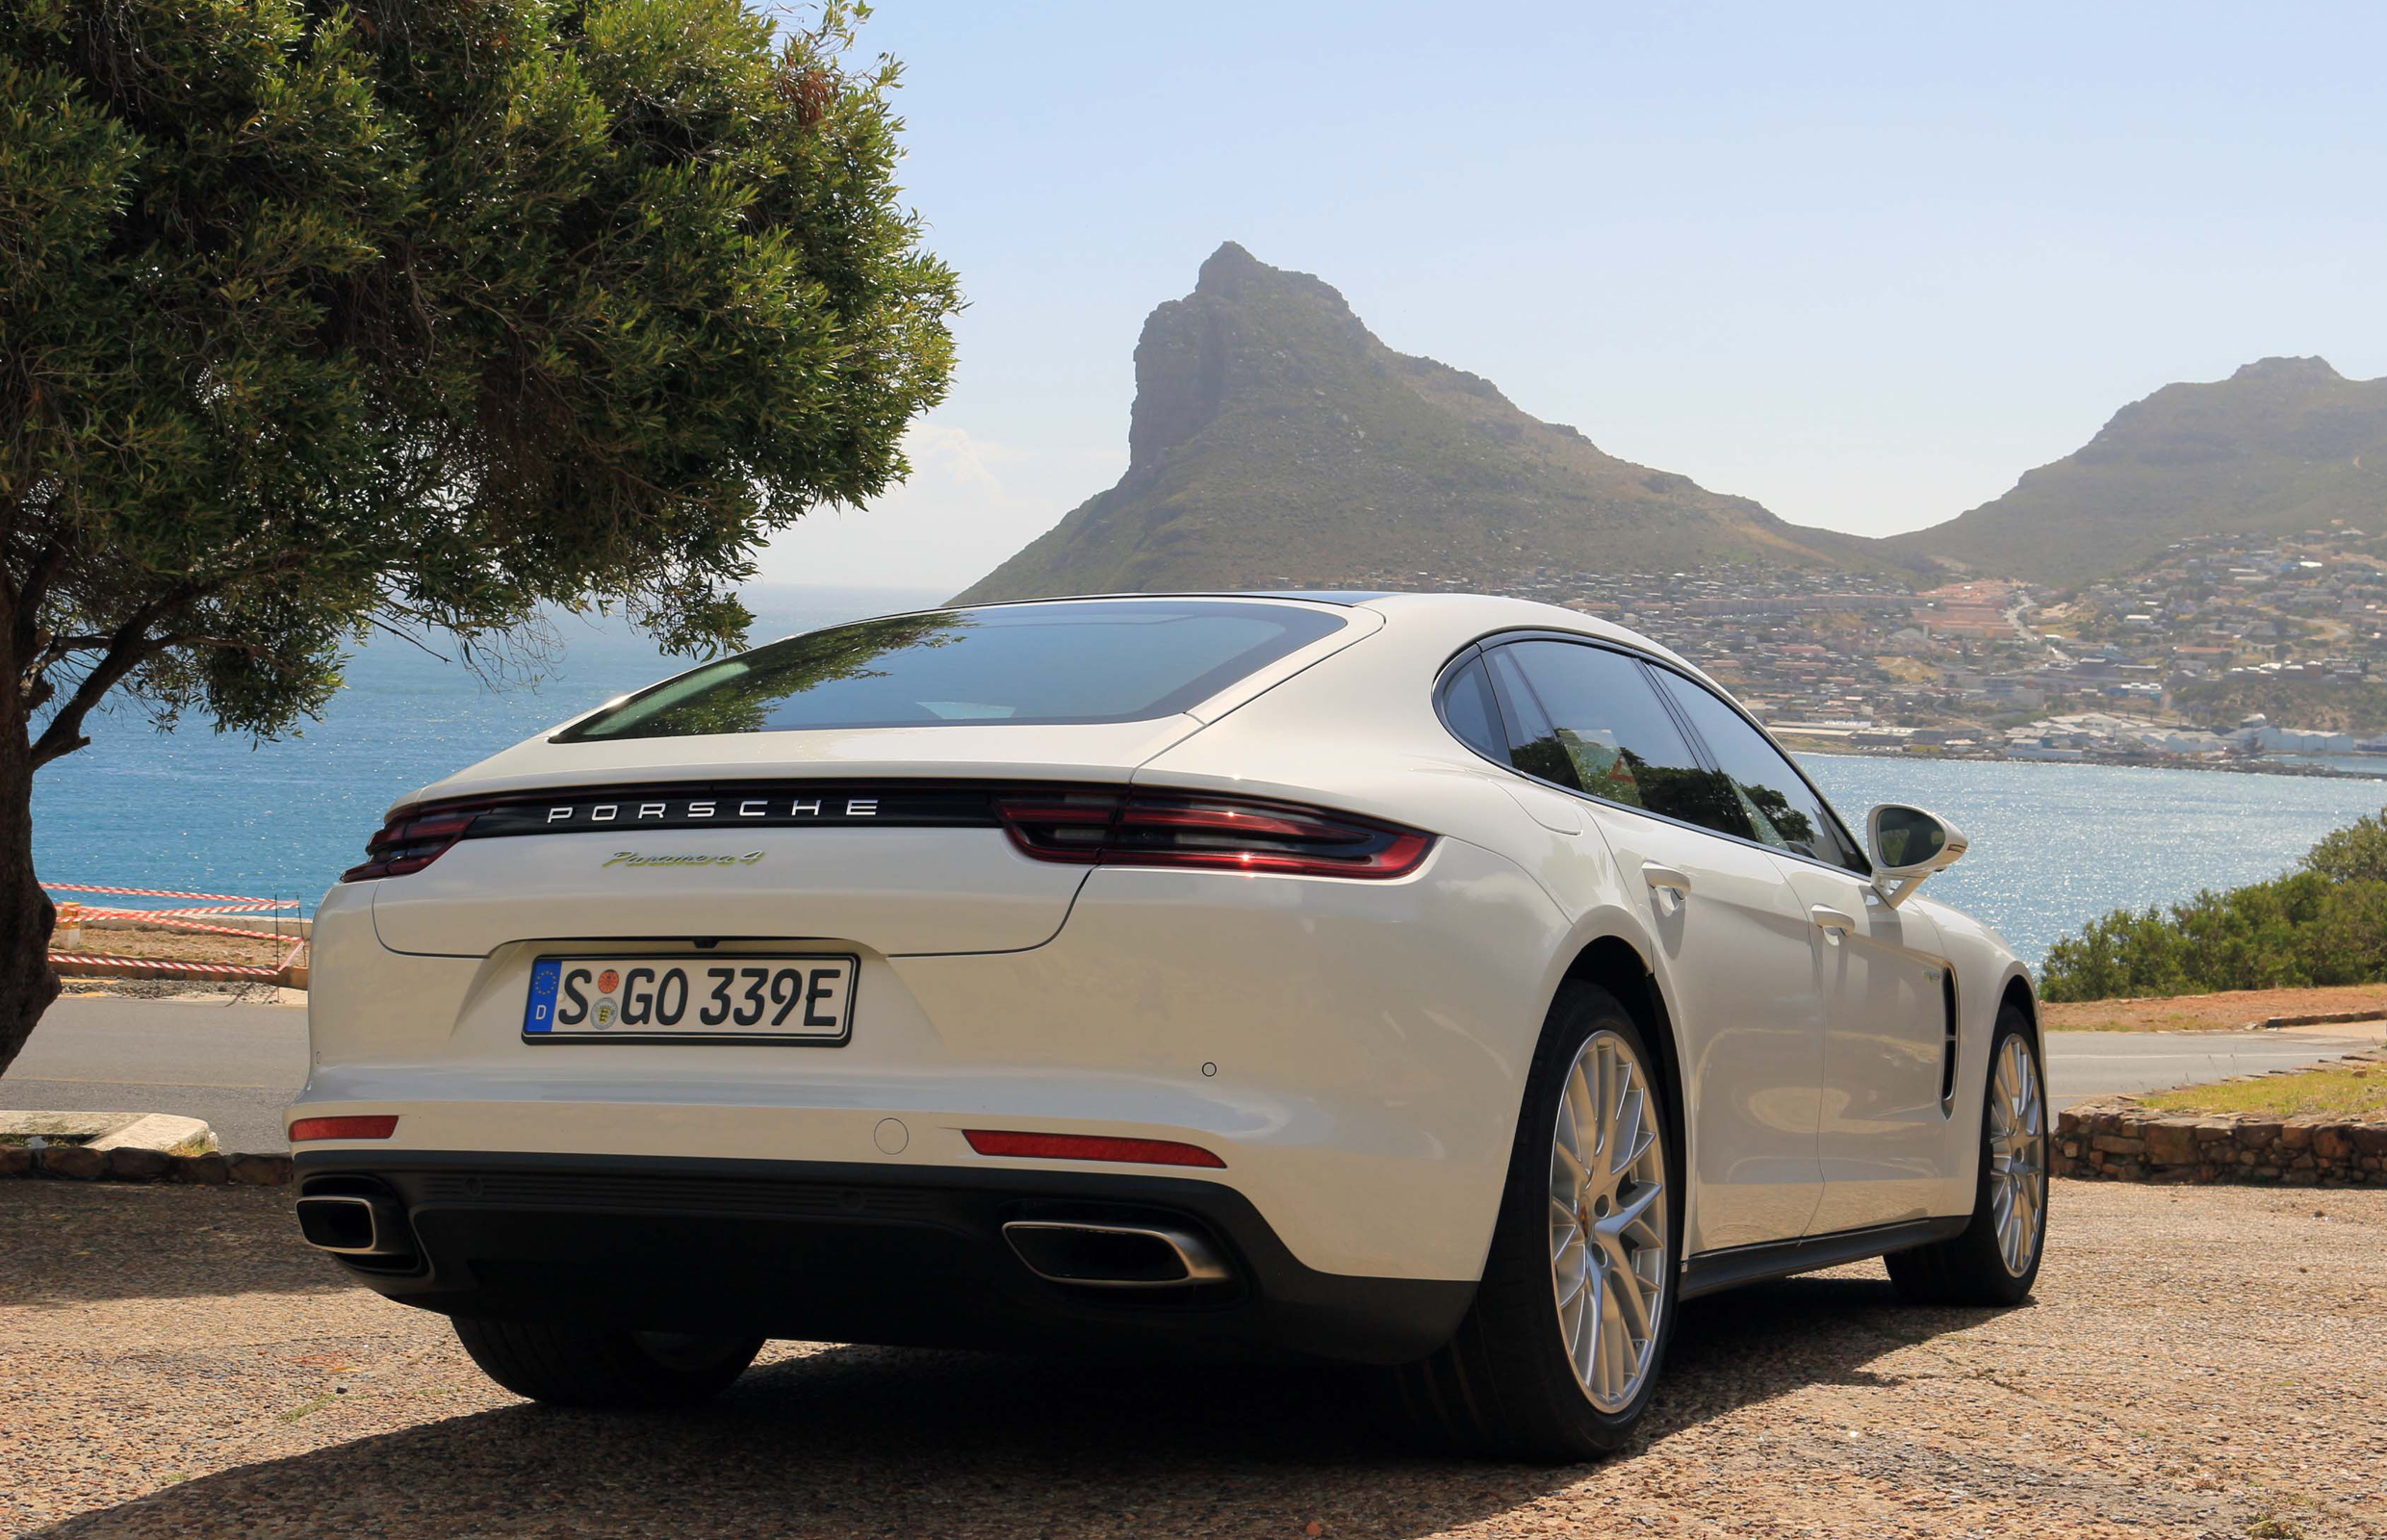 2018 Porsche Panamera 4 E Hybrid Exterior Rear And Side (Photo 6 of 10)